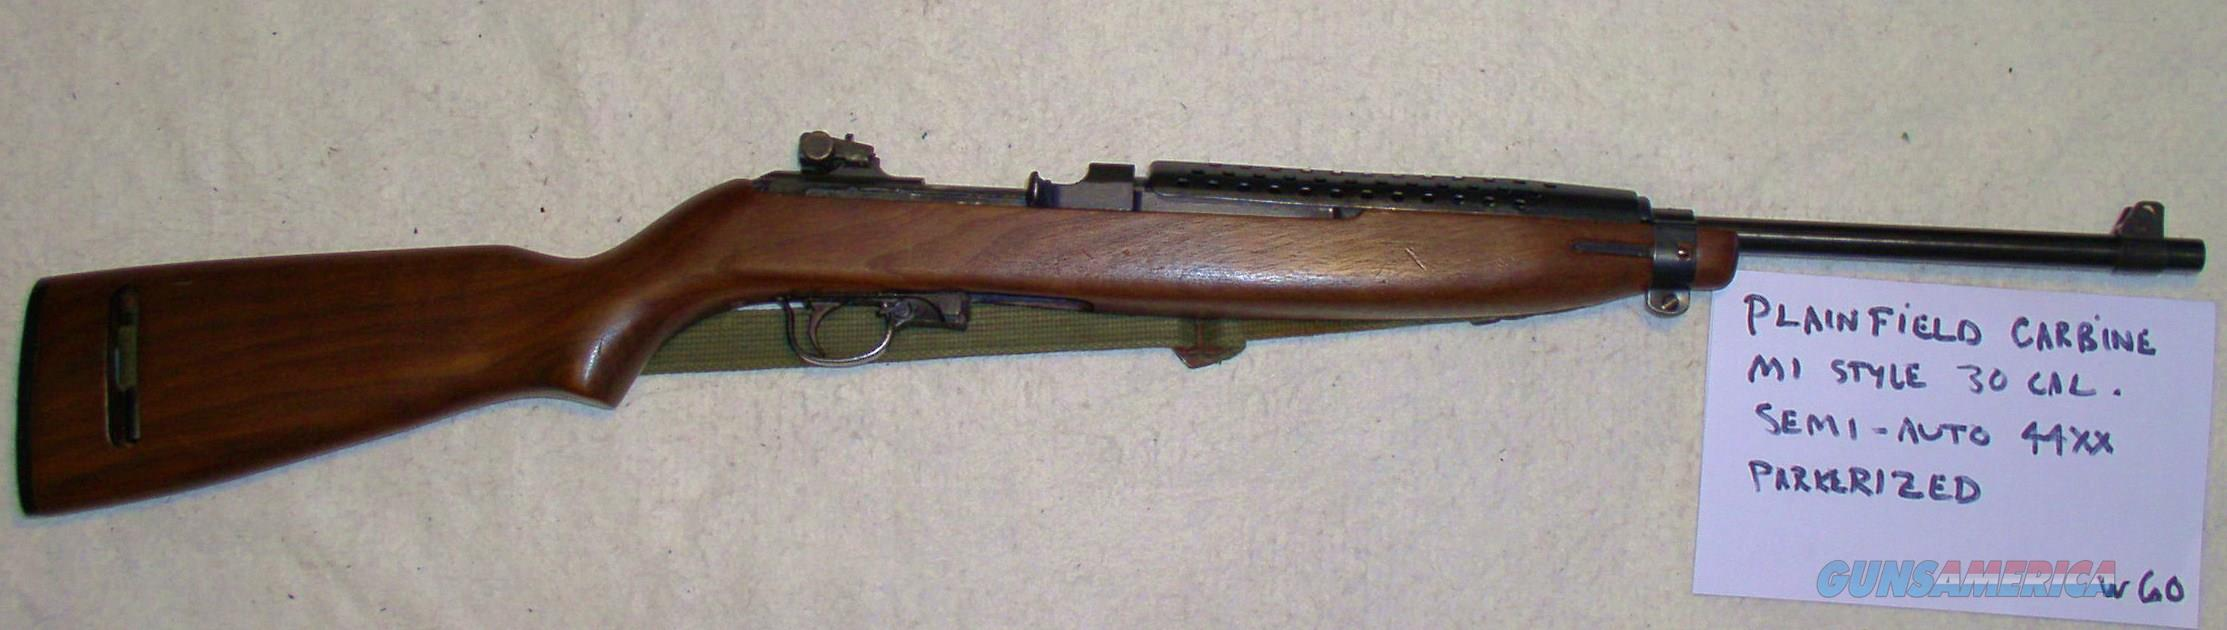 Patriot Auto Sales >> PLAINFIELD CARBINE M-1 MILITARY STYLE VIETNAM ... for sale